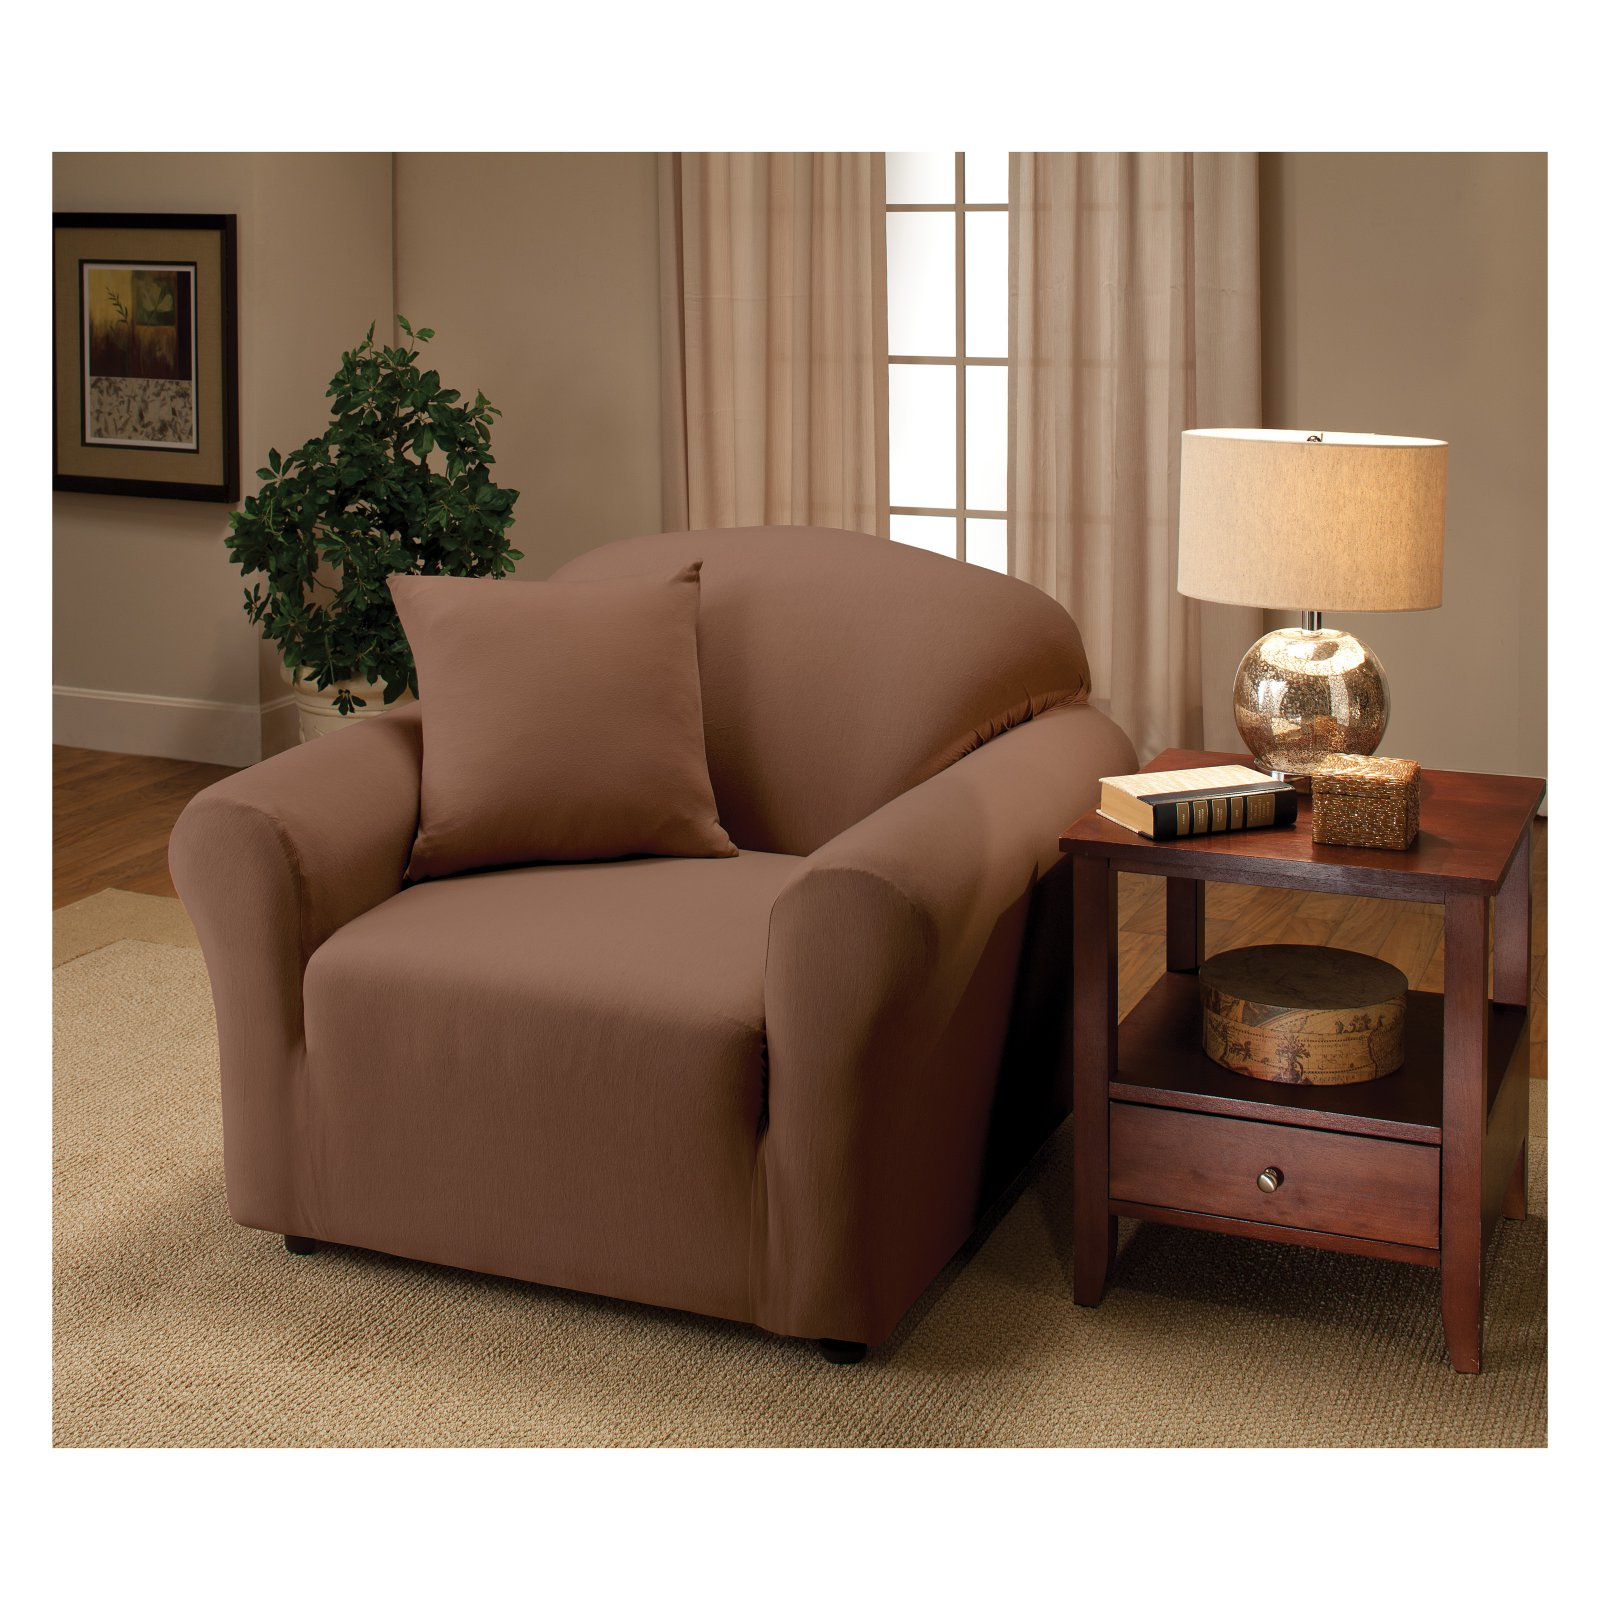 Madison Jersey Stretch Slipcover, Chair by Madison Industries, Inc.